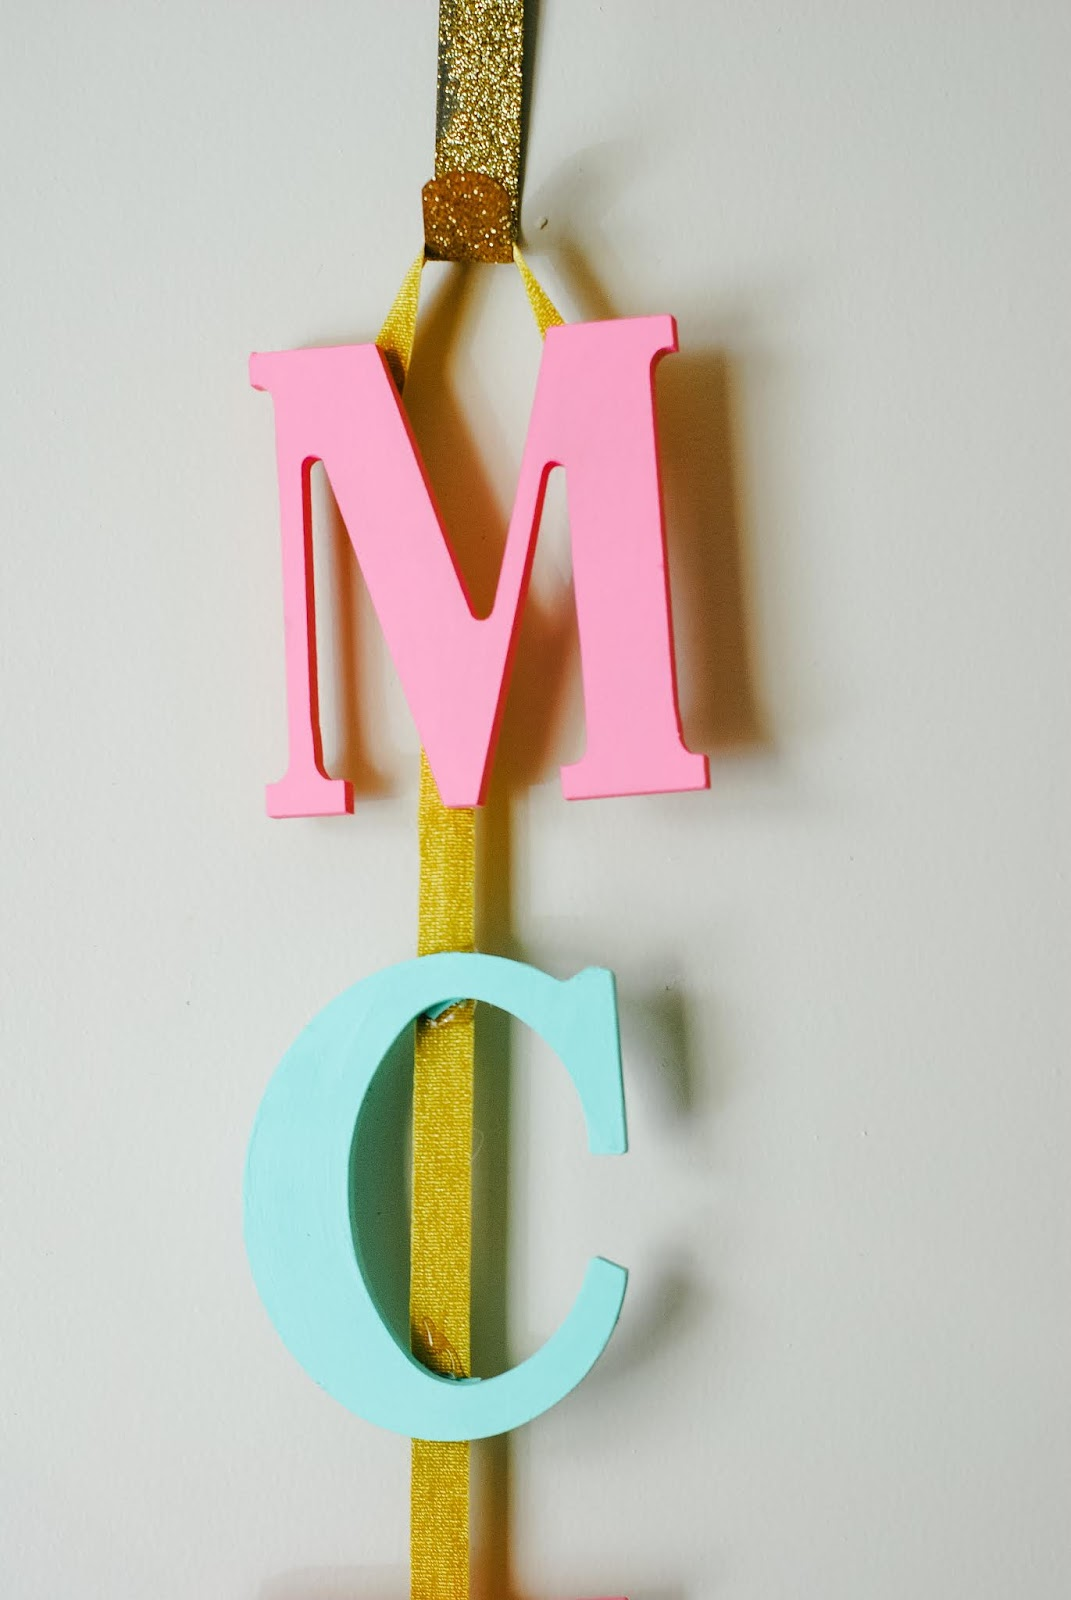 When I found out I was pregnant I could not wait to start turning our second bedroom into a nursery. When we found out it was a girl and decided on a name, I had so many ideas about themes and it was so hard to decide on decor. But I knew I wanted to make a few things by hand and always make them a part of McKenna's room. I love every single one of these DIYs and I'm so happy to share them on the blog with you today! Keep reading for 3 easy and inexpensive DIYs that will add a personalized touch to your little bundle of joy's nursery without breaking the bank! #babynursery #babygirlnursery #babynurserydiys #girlnurserydiy